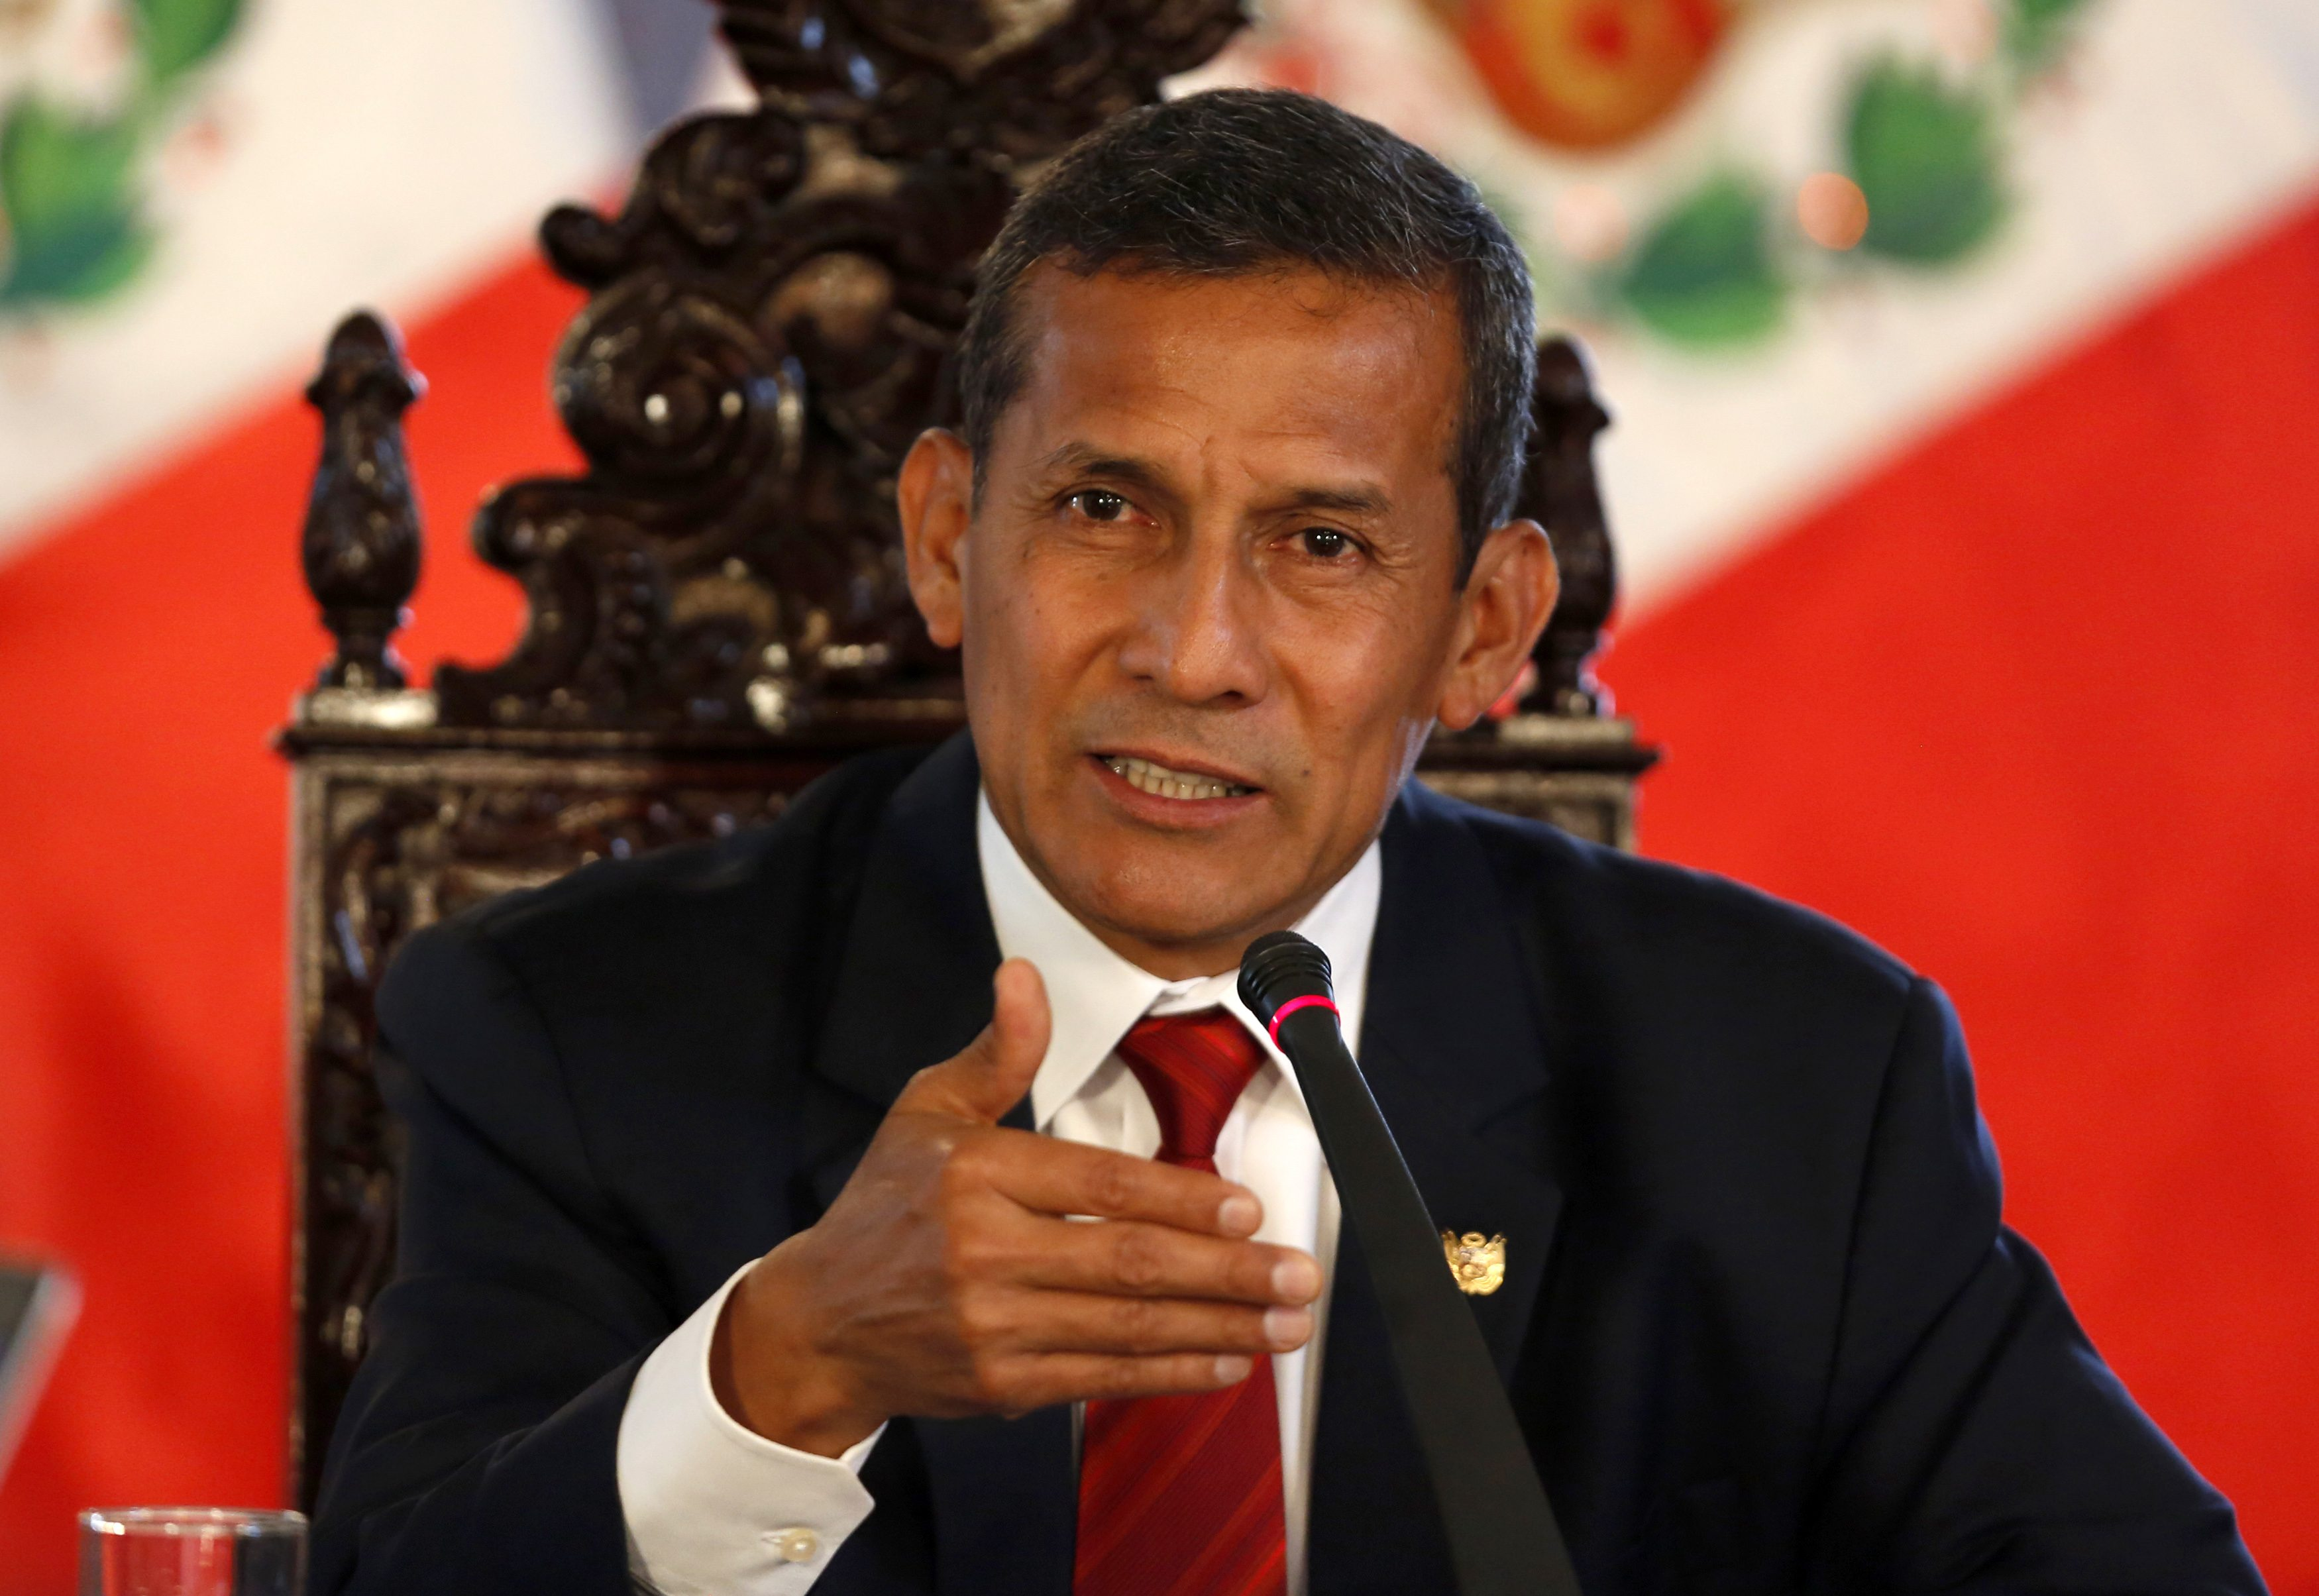 Peru's President Ollanta Humala talks to the media during a meeting with the foreign press at the government palace in Lima, March 2, 2015.  REUTERS/ Mariana Bazo  (PERU - Tags: POLITICS)